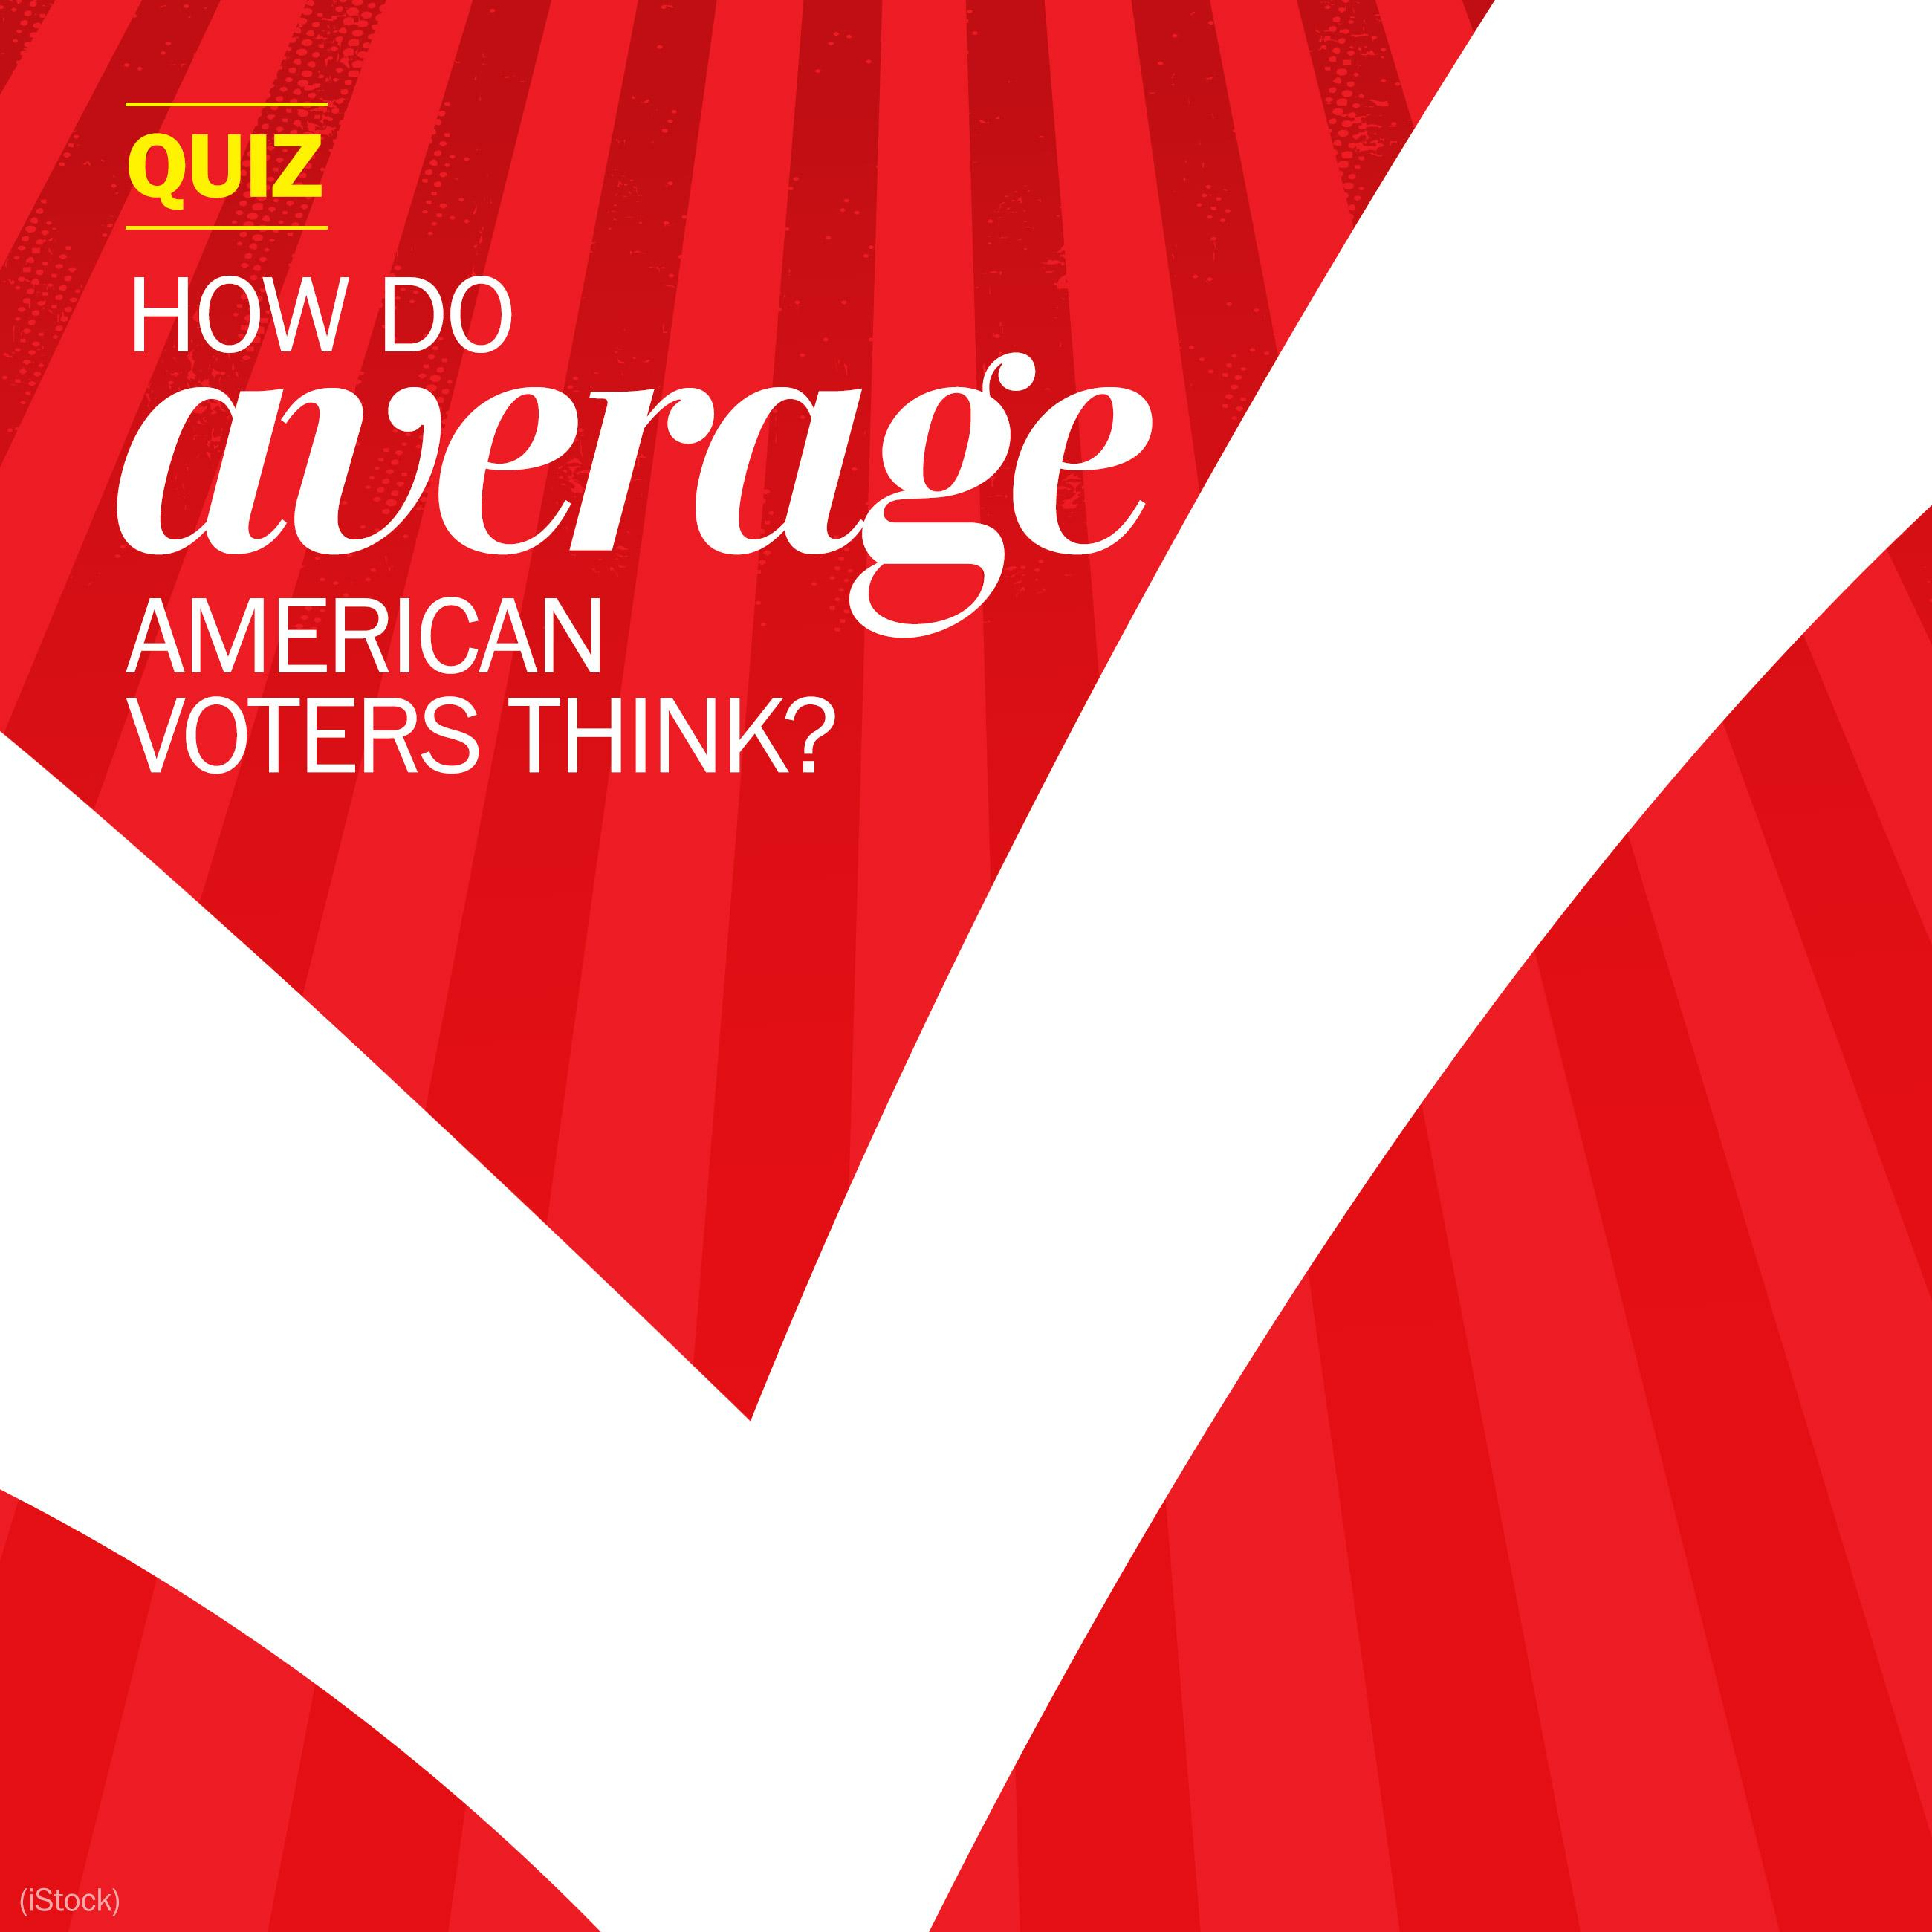 How much do you know about what American voters think?